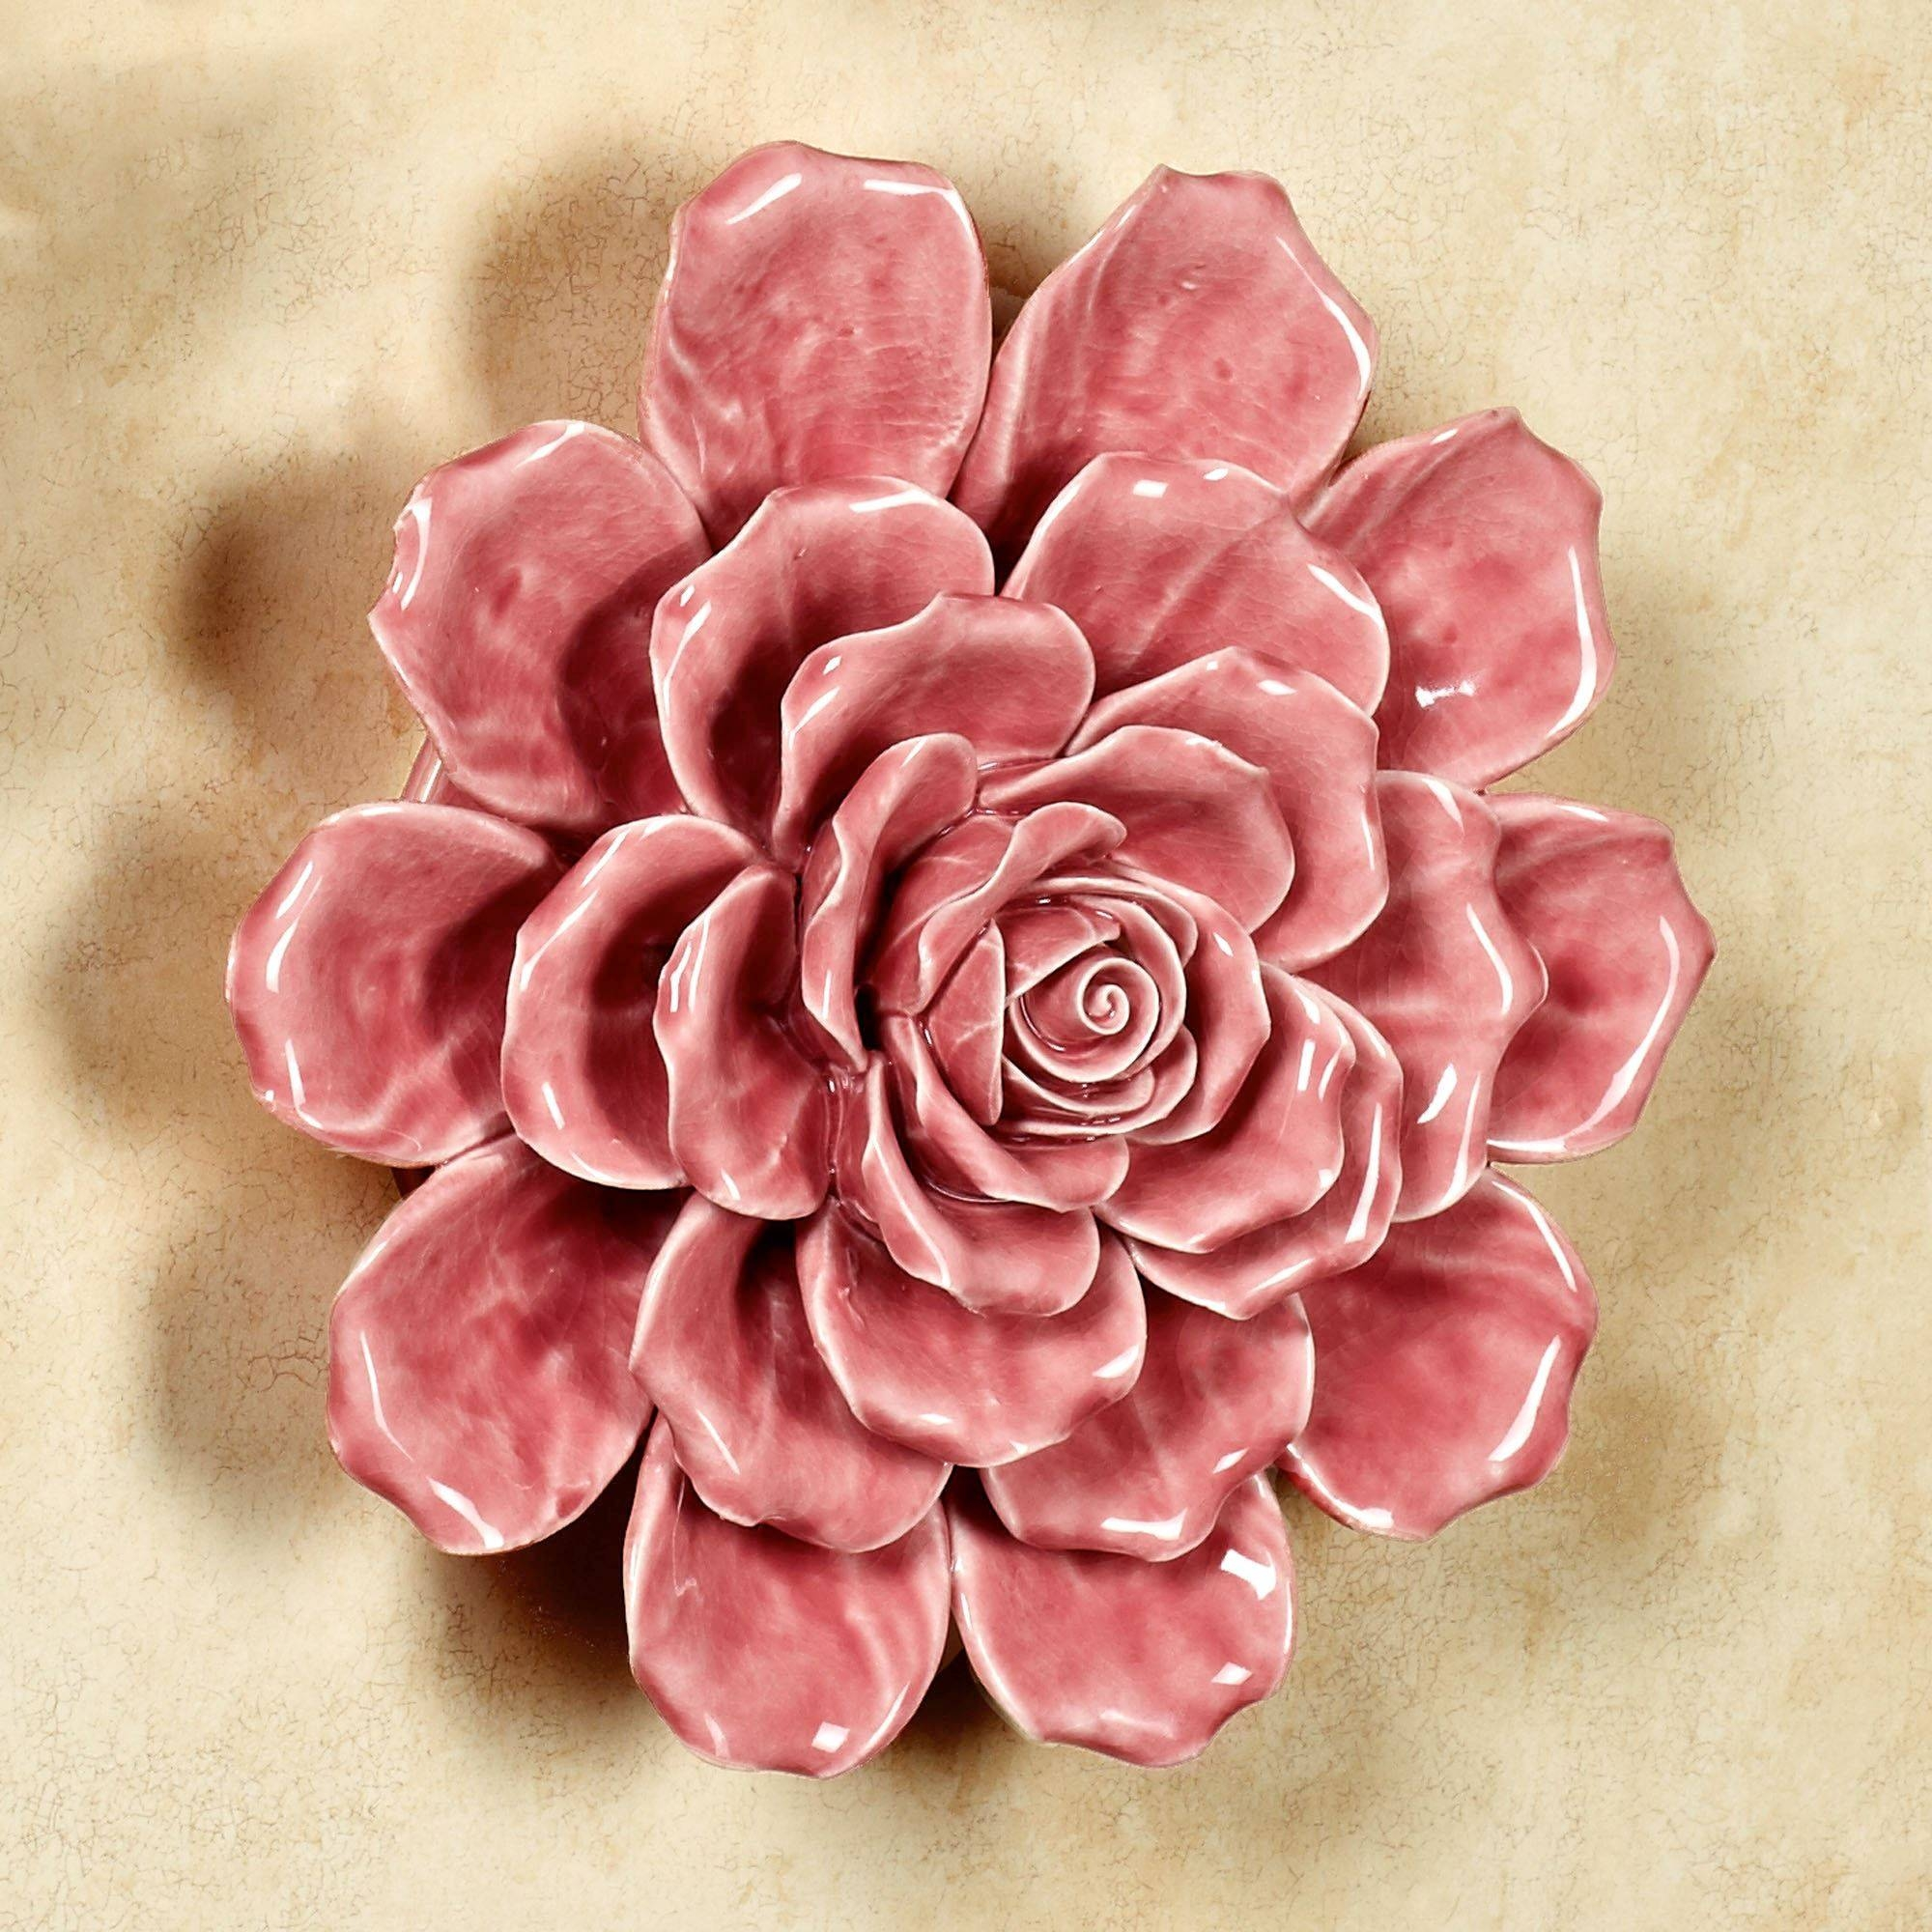 Isabella Ceramic Flower Blossom Wall Art Pertaining To 2018 Ceramic Flower Wall Art (View 16 of 30)